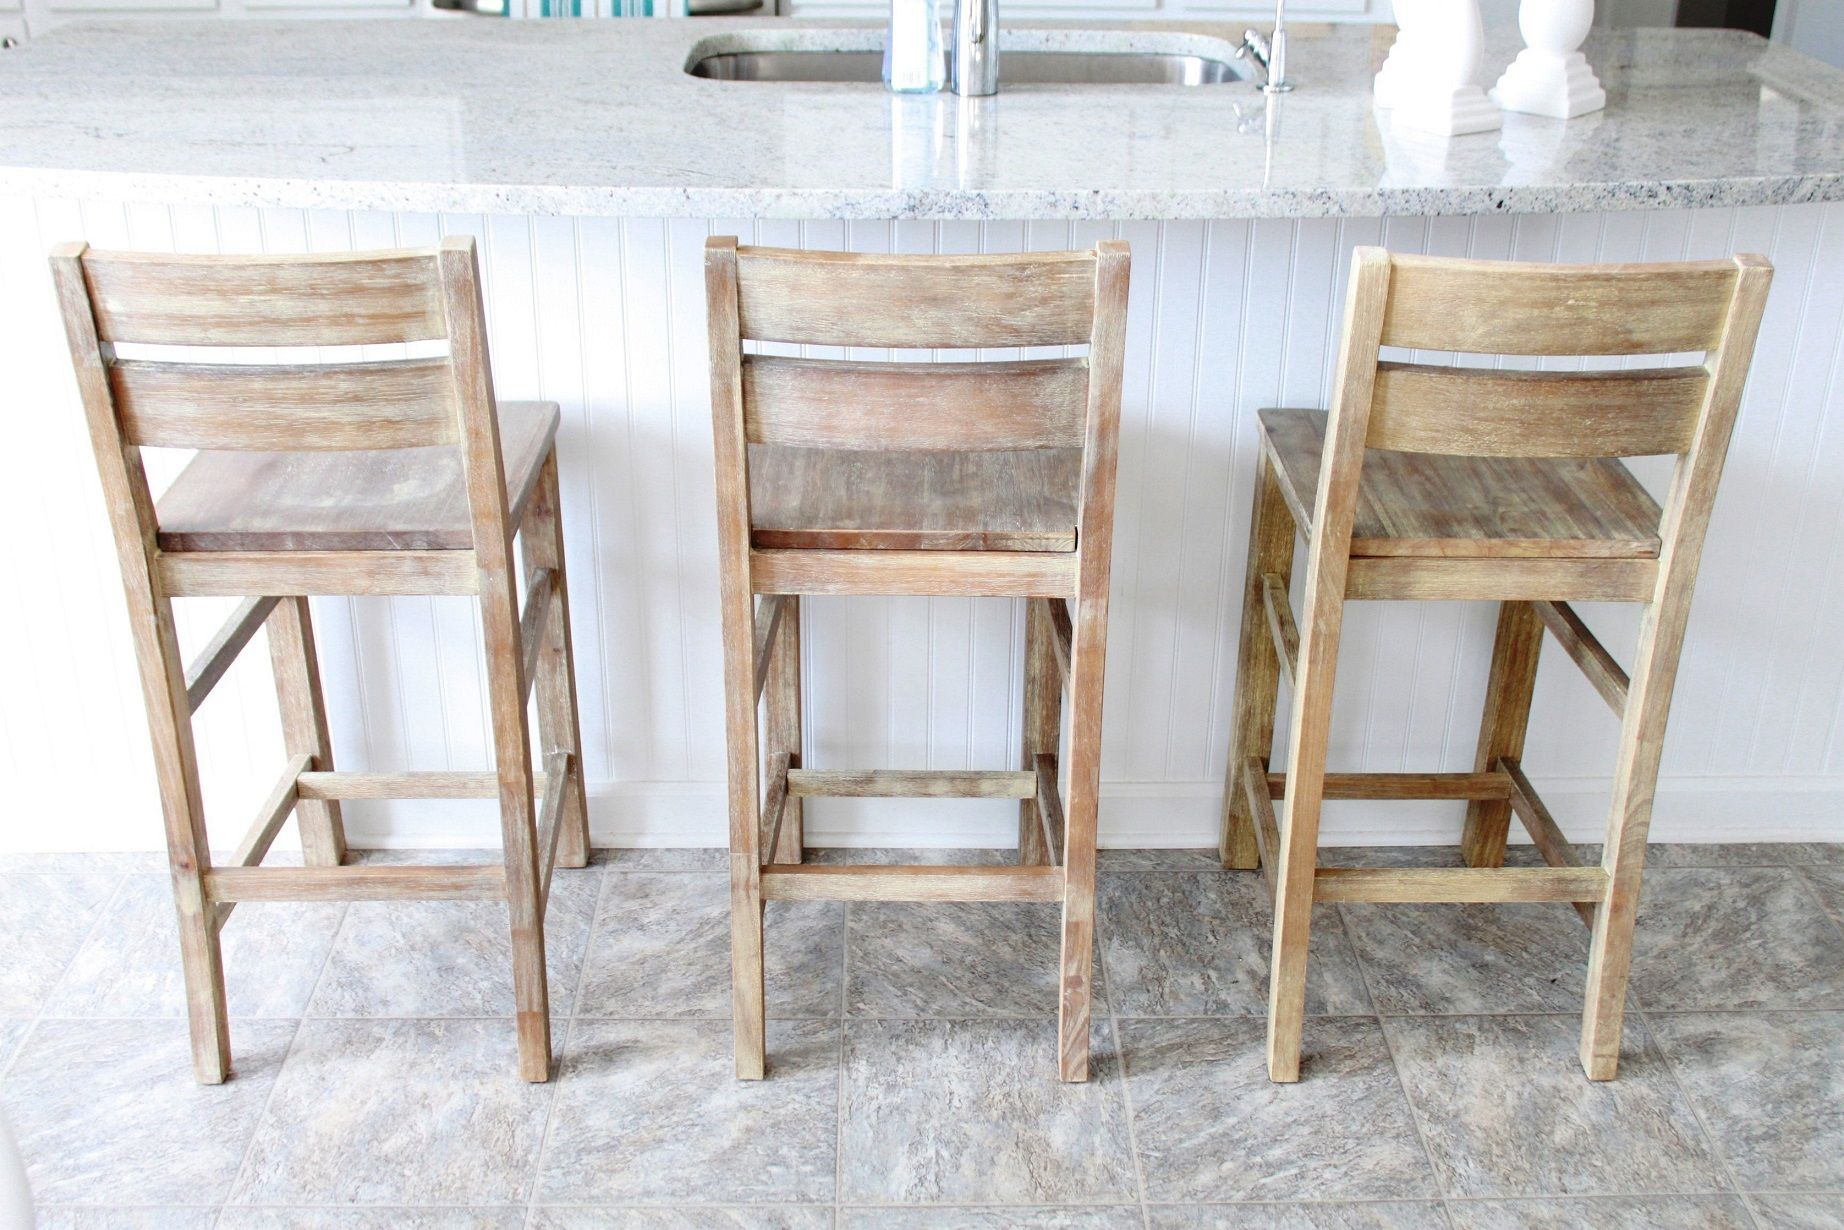 Cheap Counter Chairs Diy Bar Stools With Backs Ideas Kitchen In 2019 Diy